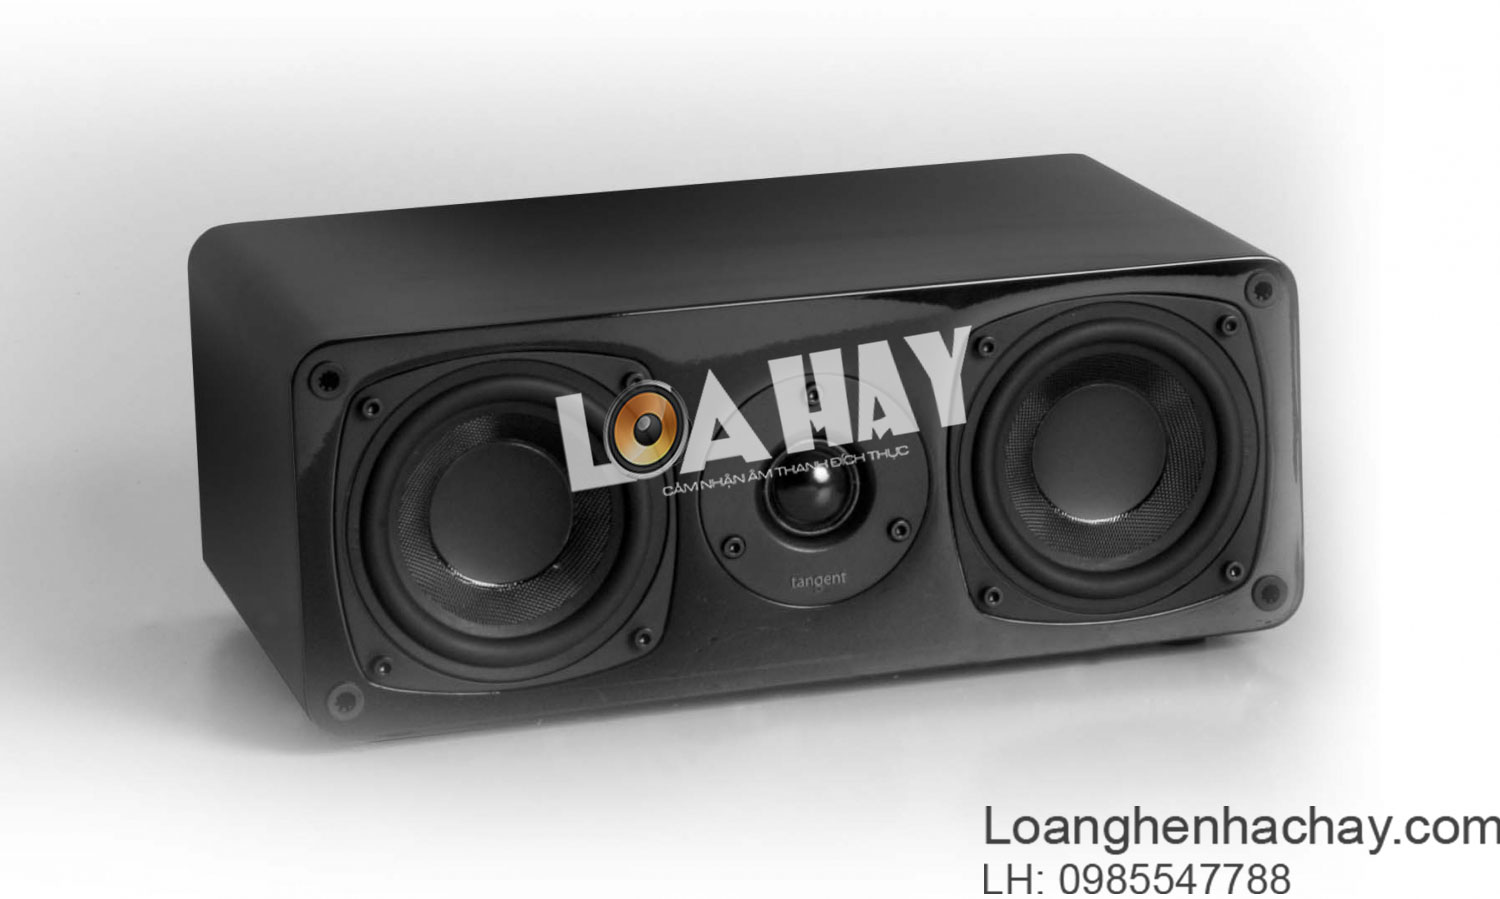 loa tangent evo e24 center